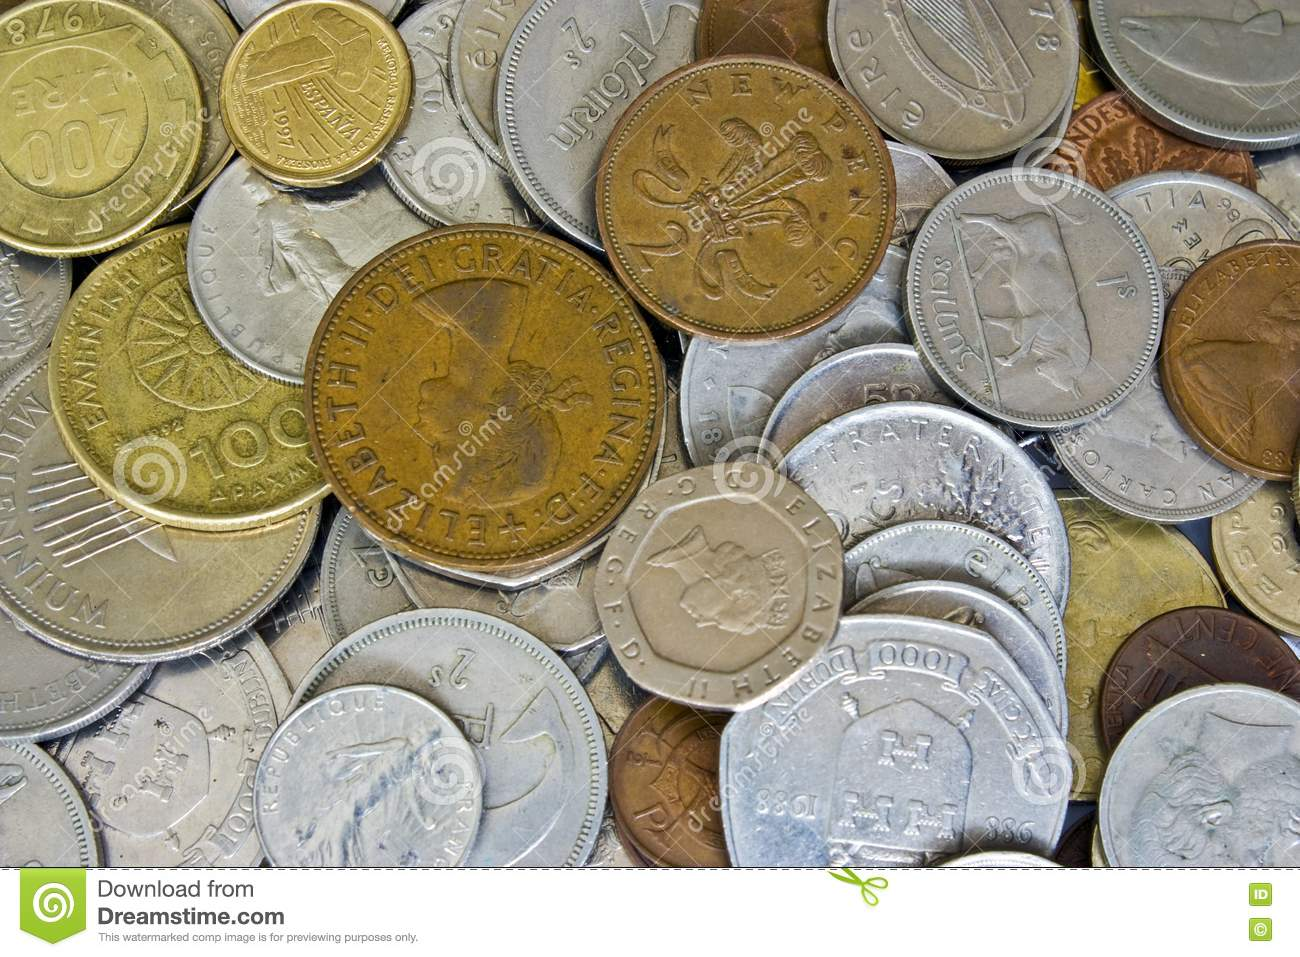 old coins stock image - photo #28